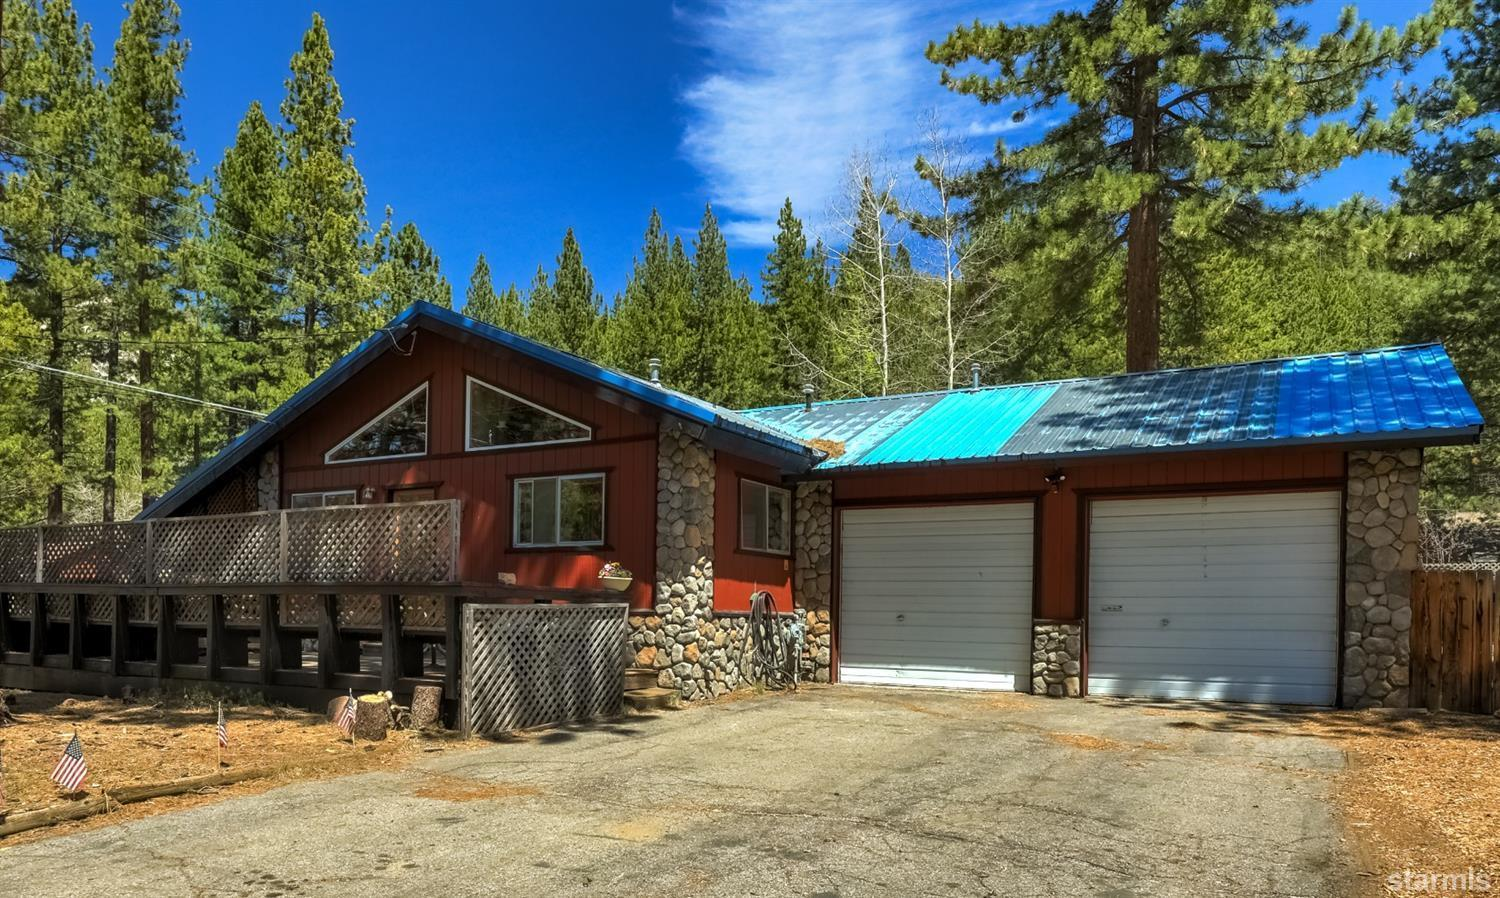 2803 Saint Nick Way, 134287, South Lake Tahoe, Single-Family Home,  for sale, Brandie Griffith, Realty World - Lake Tahoe